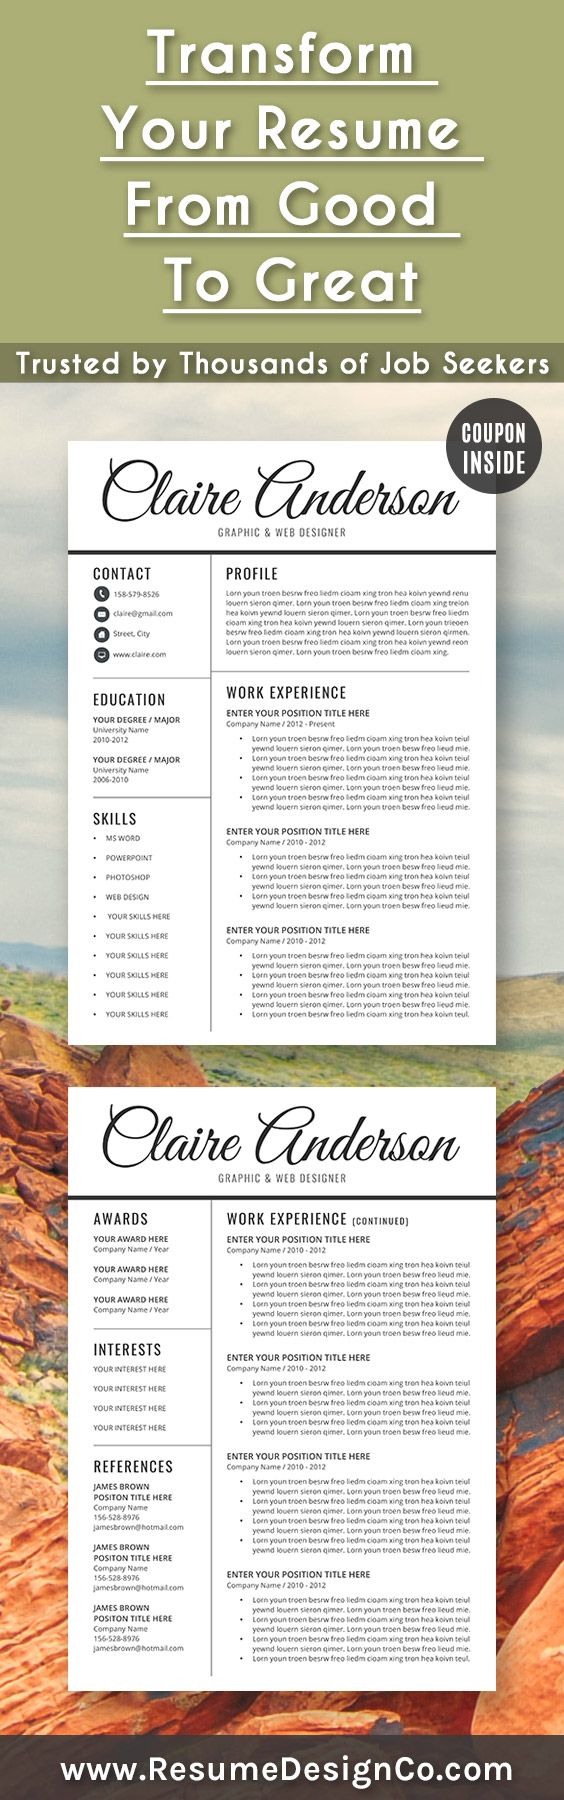 17 best ideas about good cv template good cv format transform your resume from good to great trusted by thousands of job seekers resumedesignco